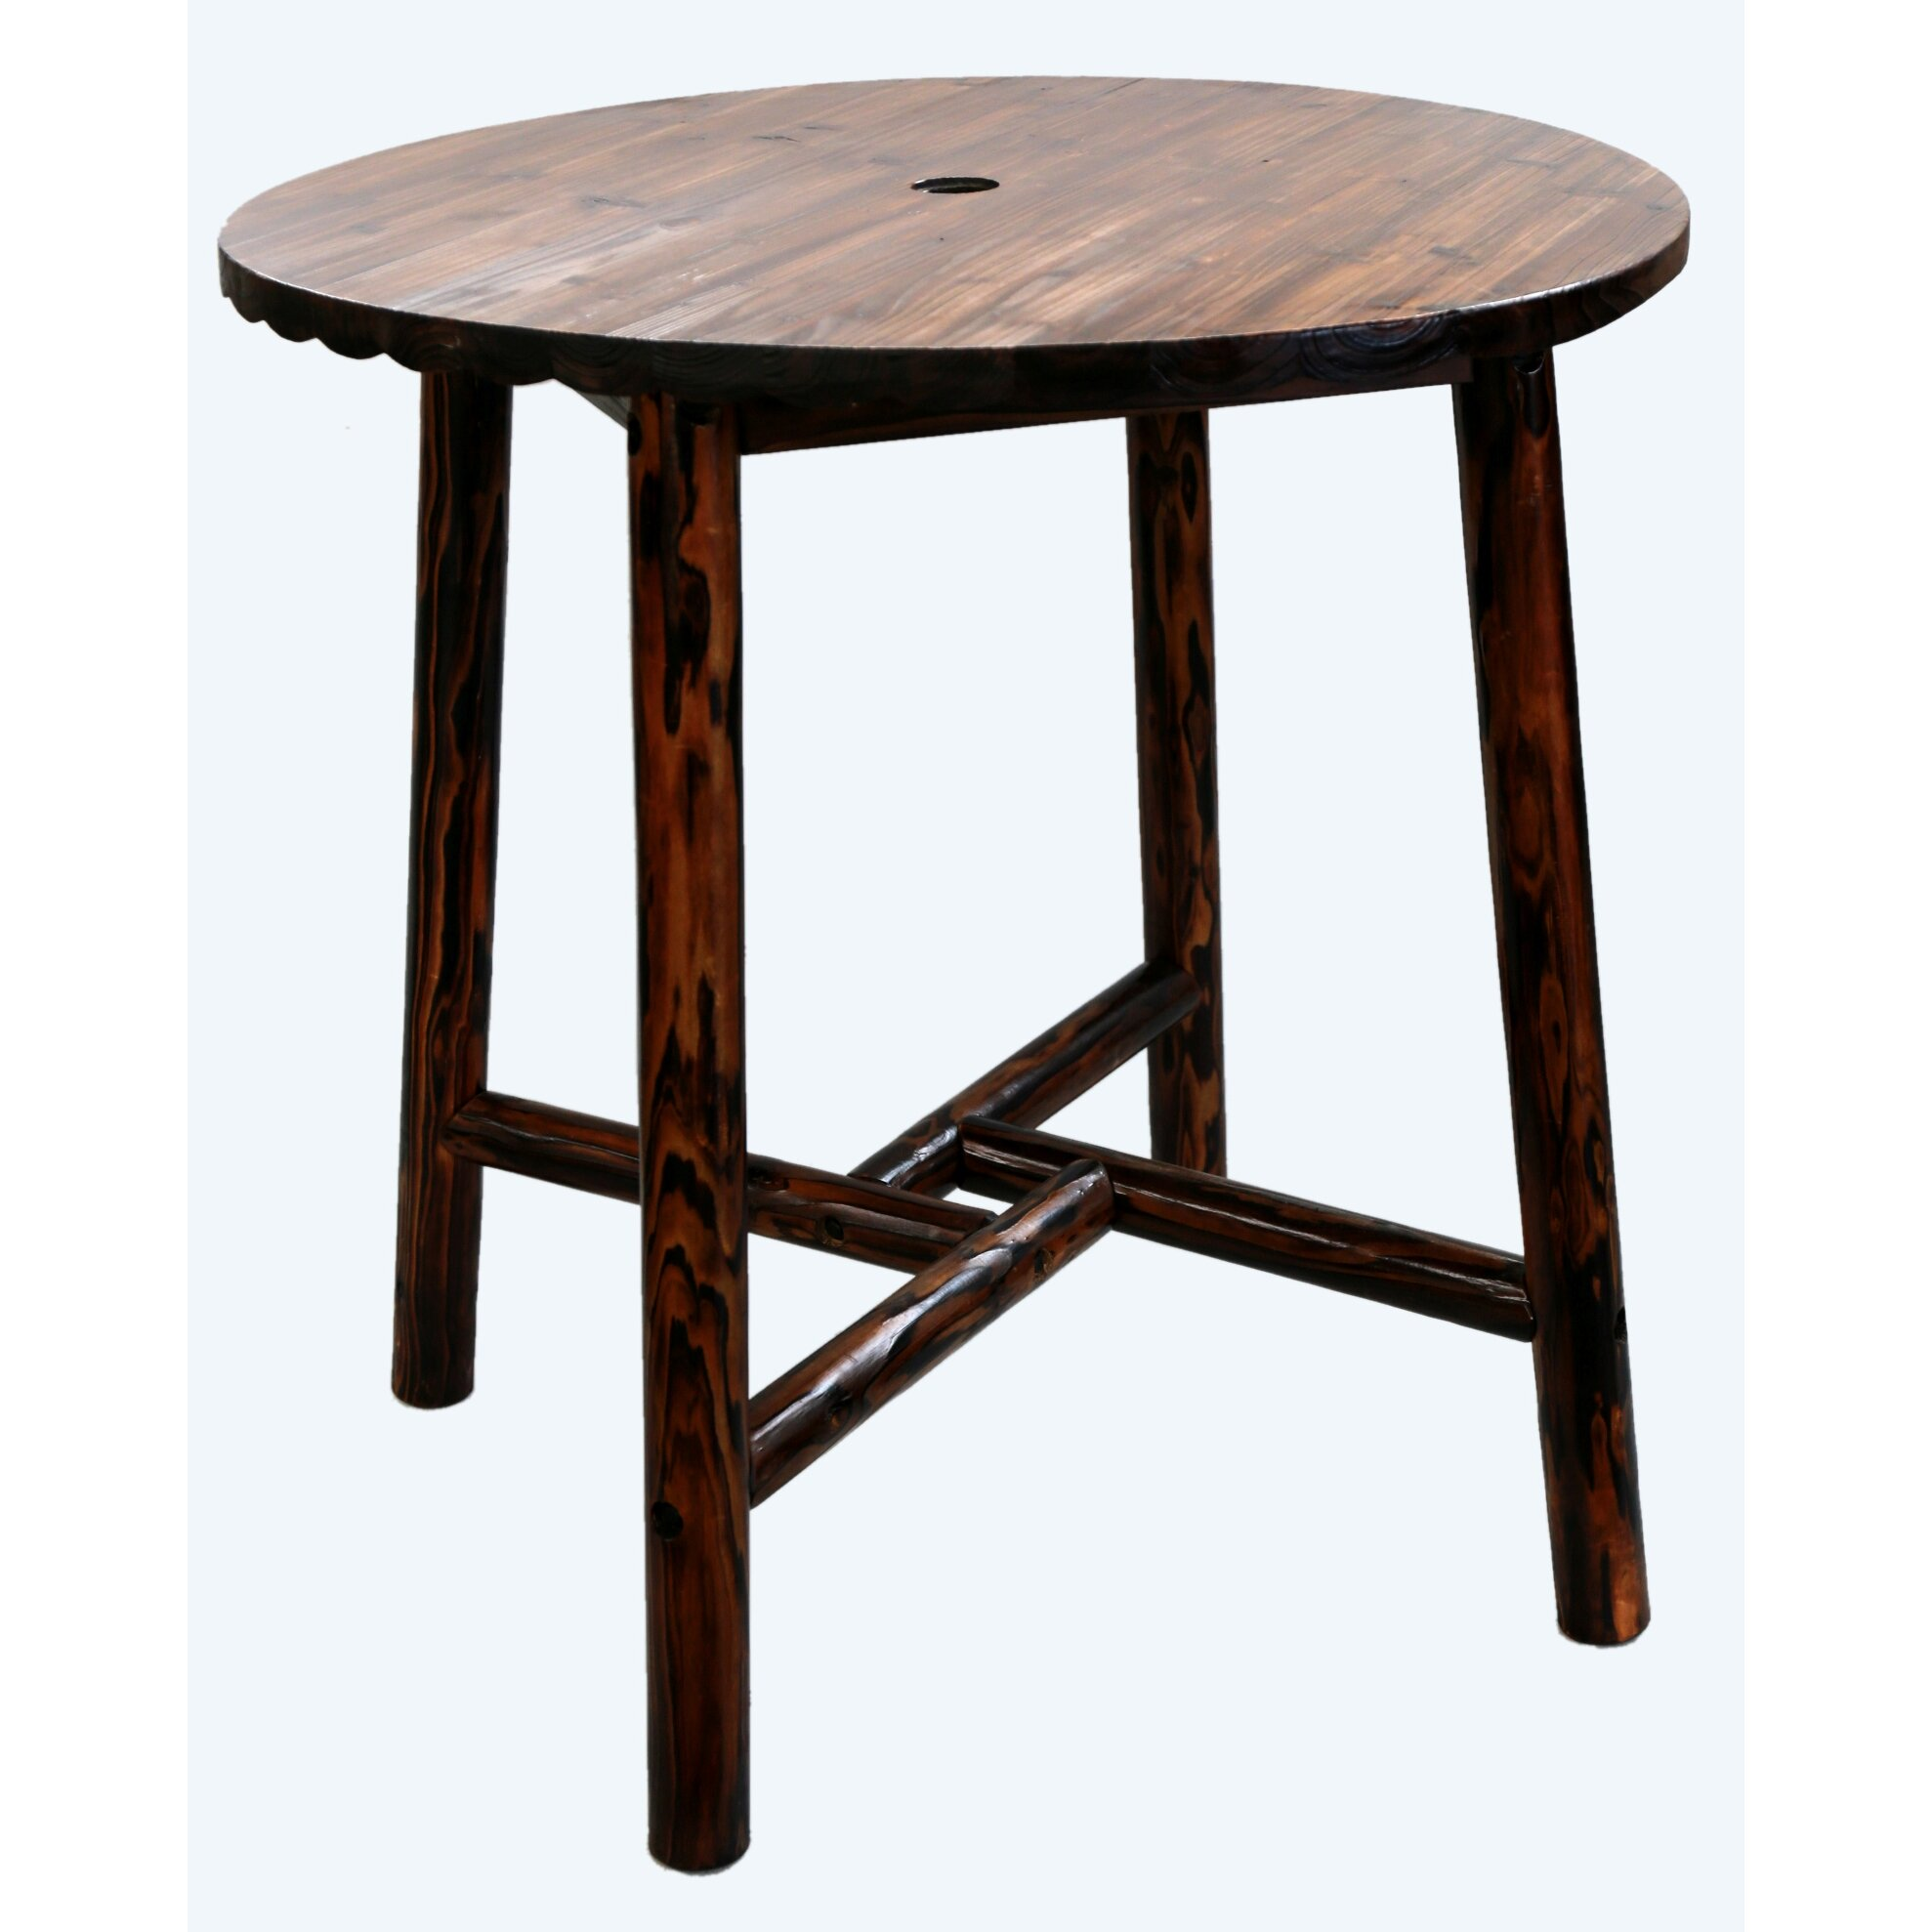 Leighcountry char log round bar table ii reviews wayfair - Table bar 2 tabourets ...